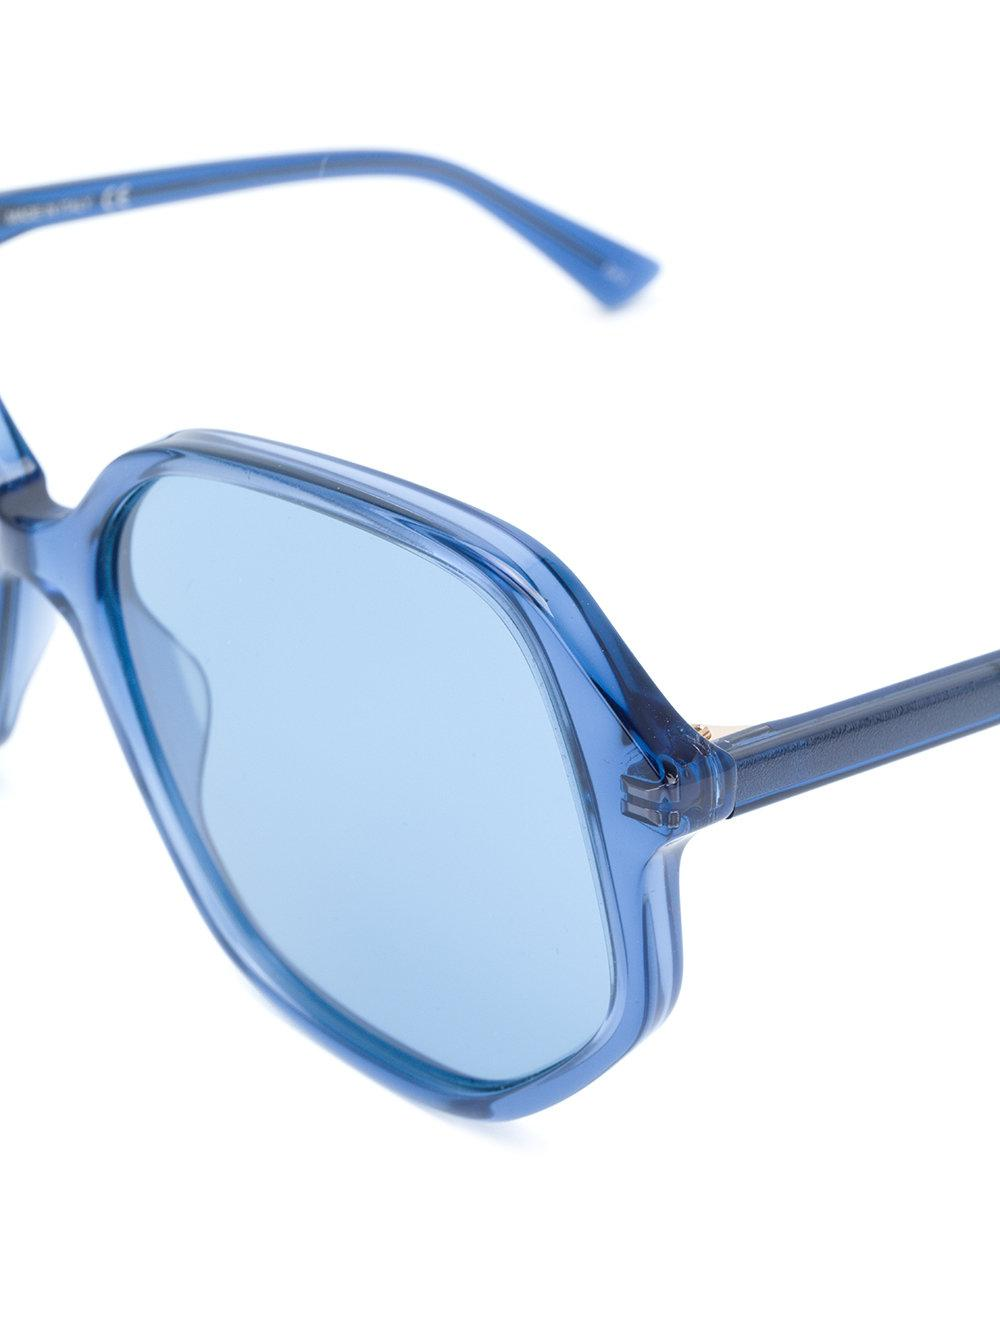 11937dc526 Gucci - Blue Clear Oversized Glasses - Lyst. View fullscreen